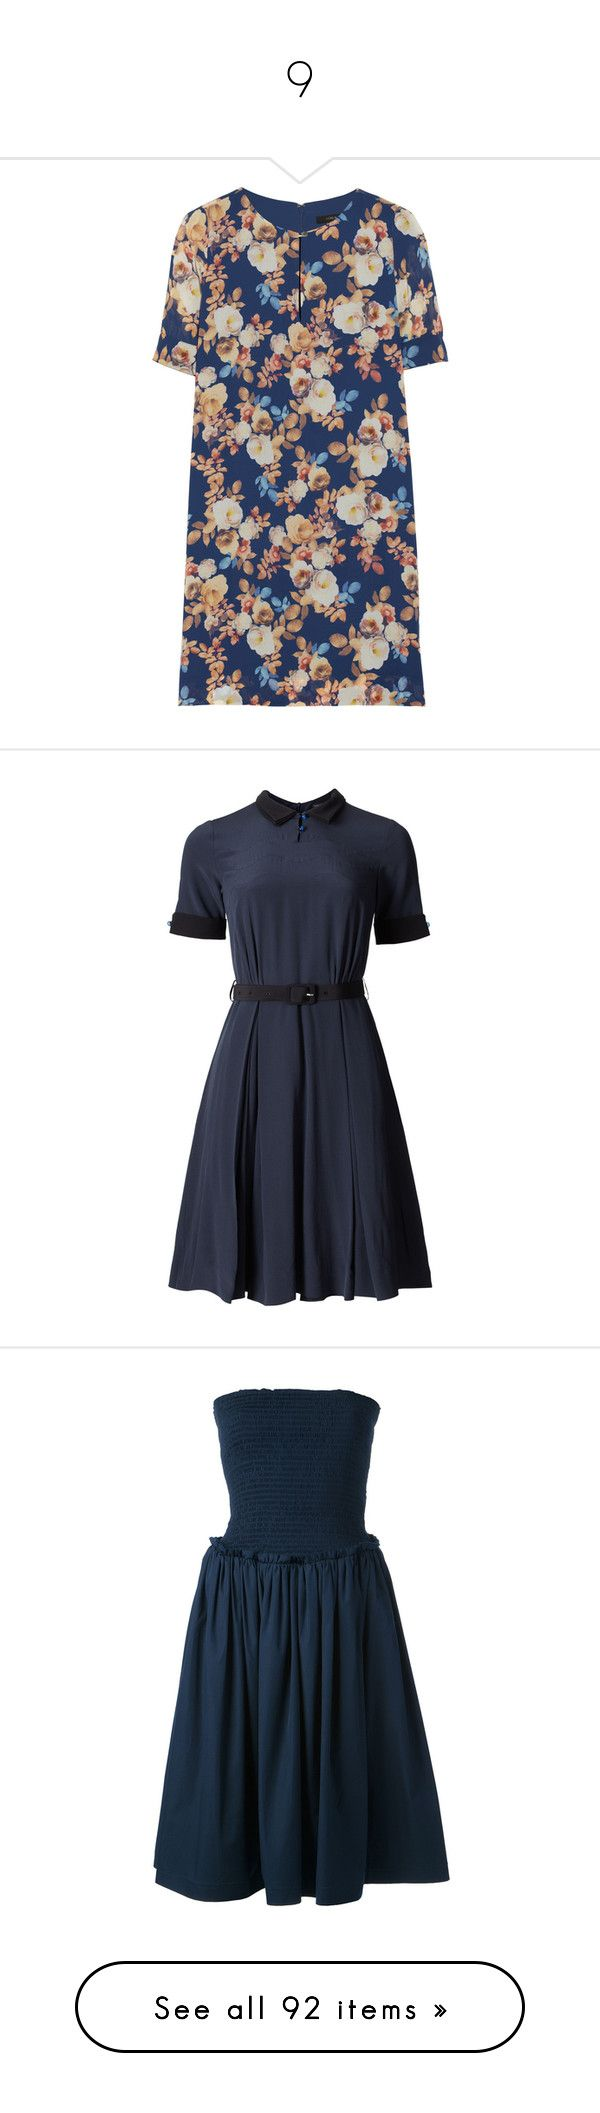 """""""9"""" by makino13 ❤ liked on Polyvore featuring dresses, vestidos, navy, blue floral print dress, blue dress, multi color dress, navy floral dress, petite dresses, short dresses and day dresses"""